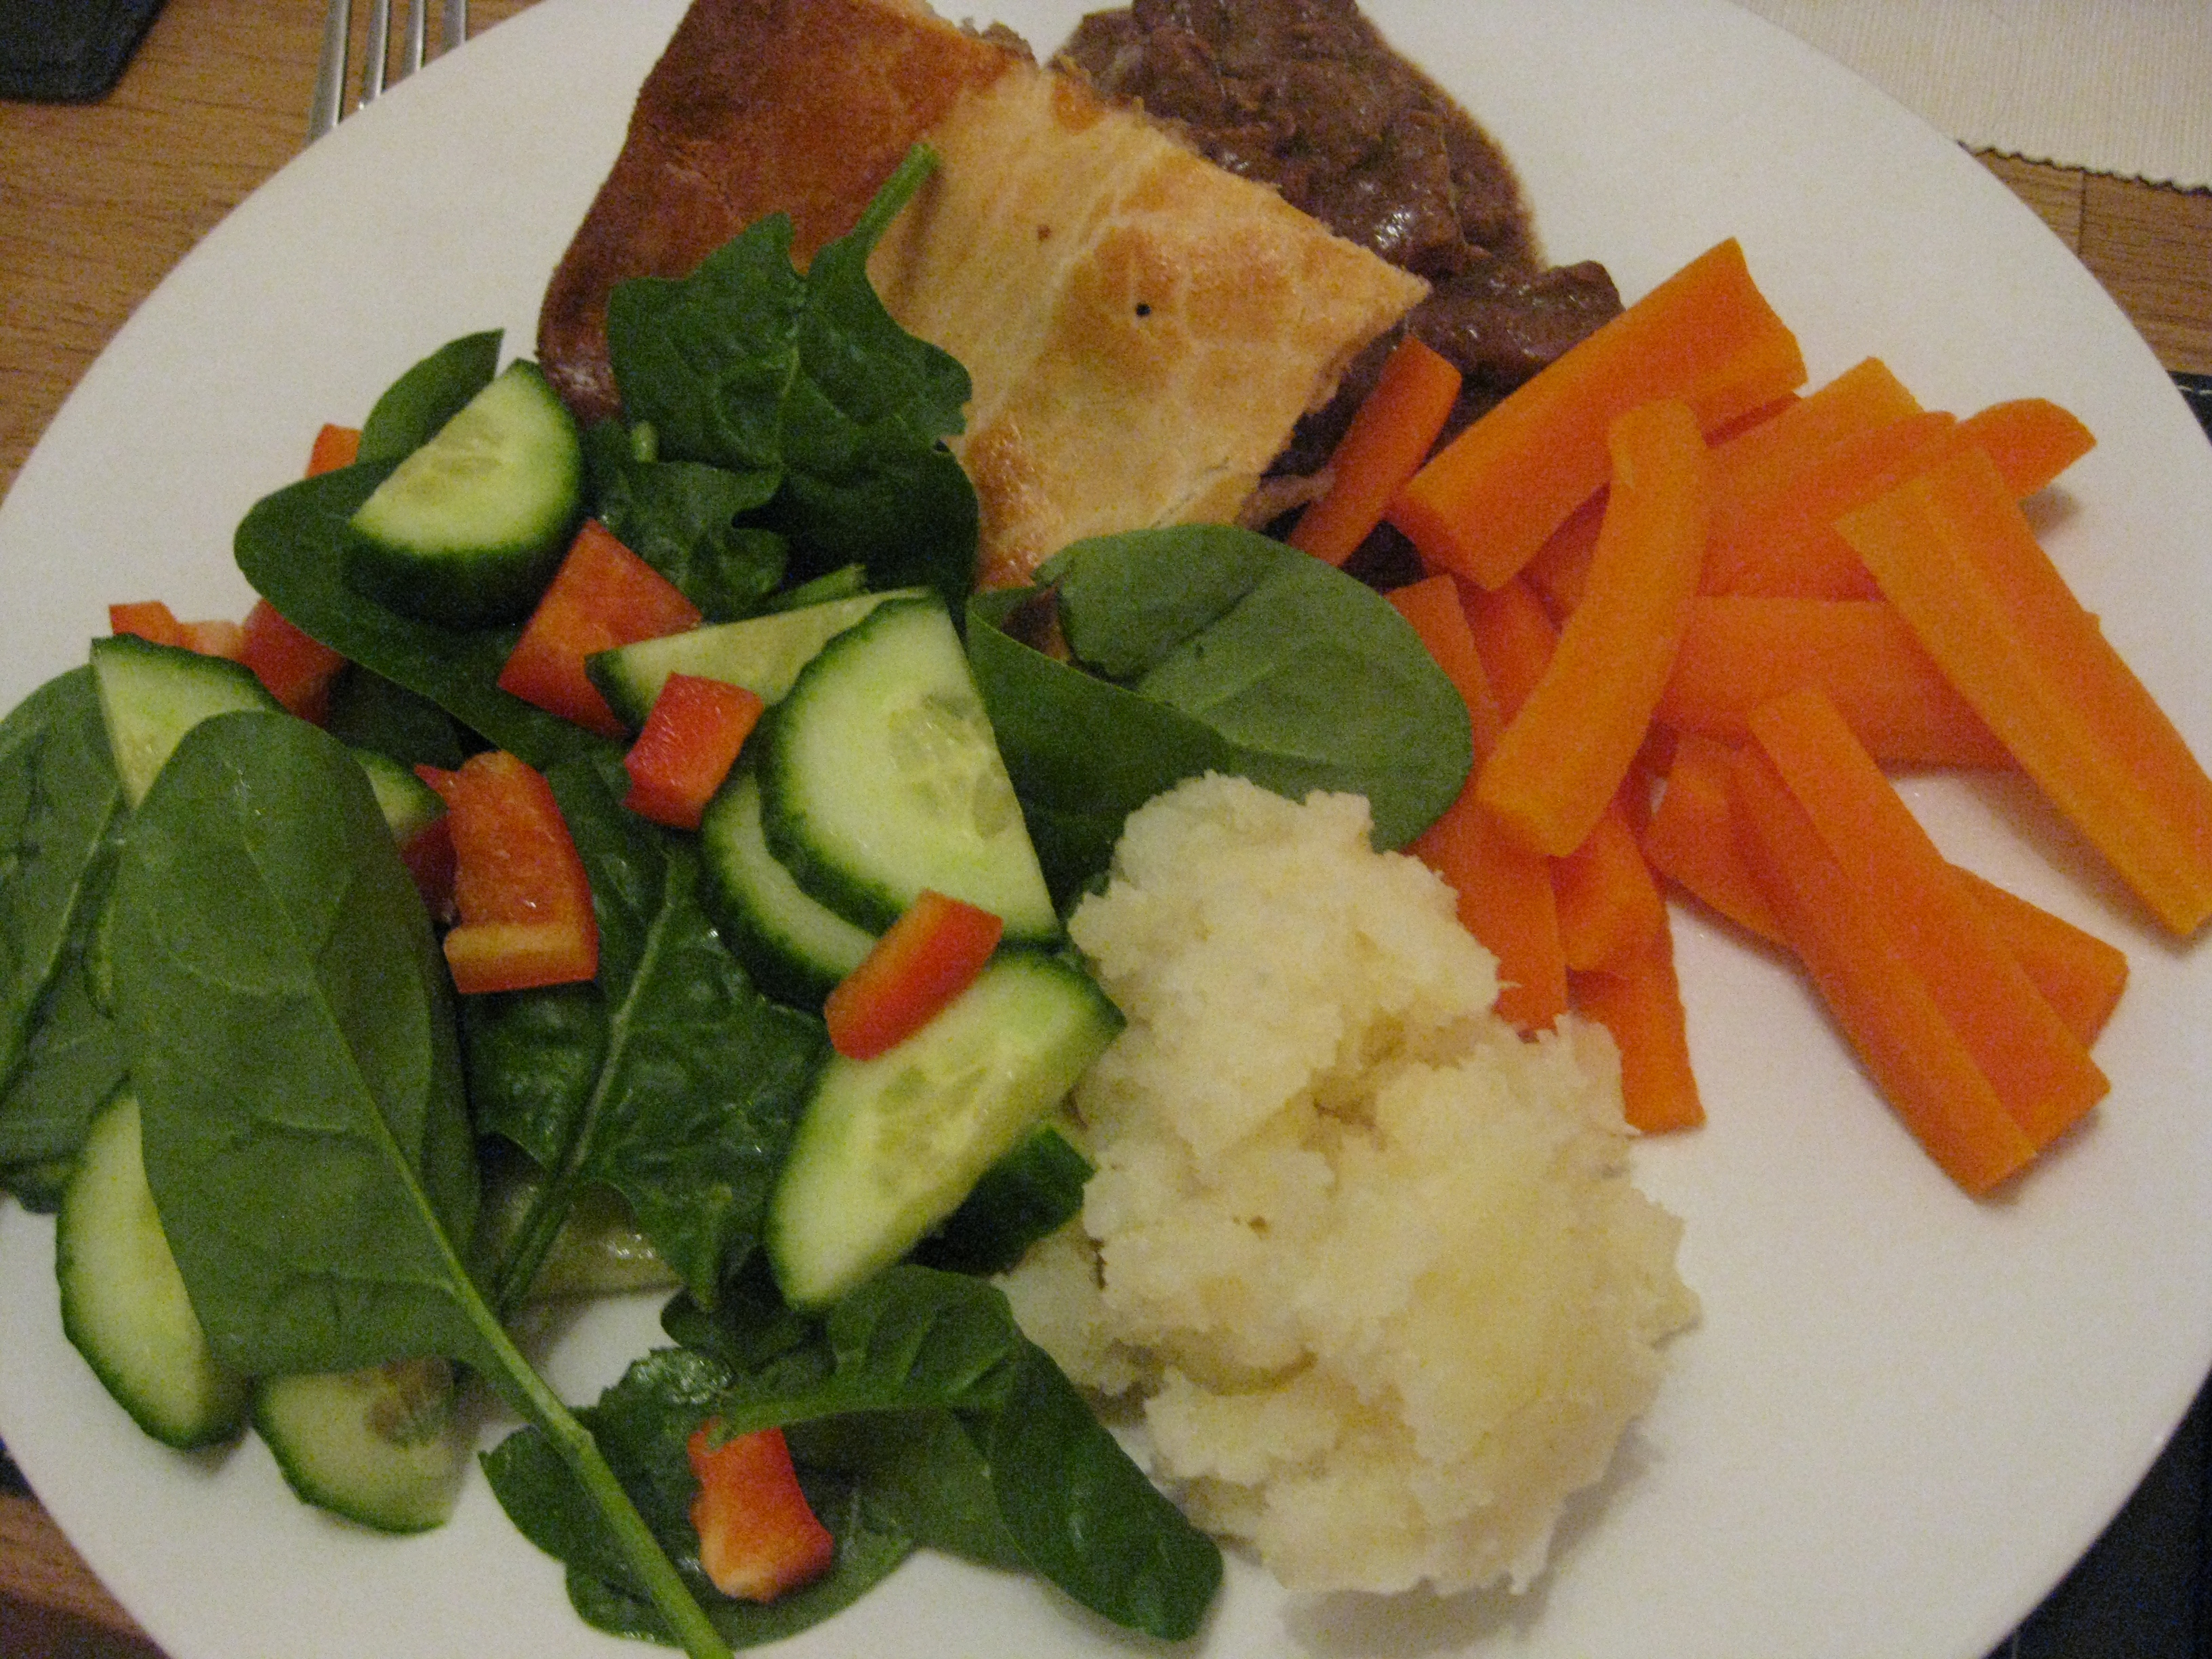 Steak pie and veggies. Yes, I need veggies!